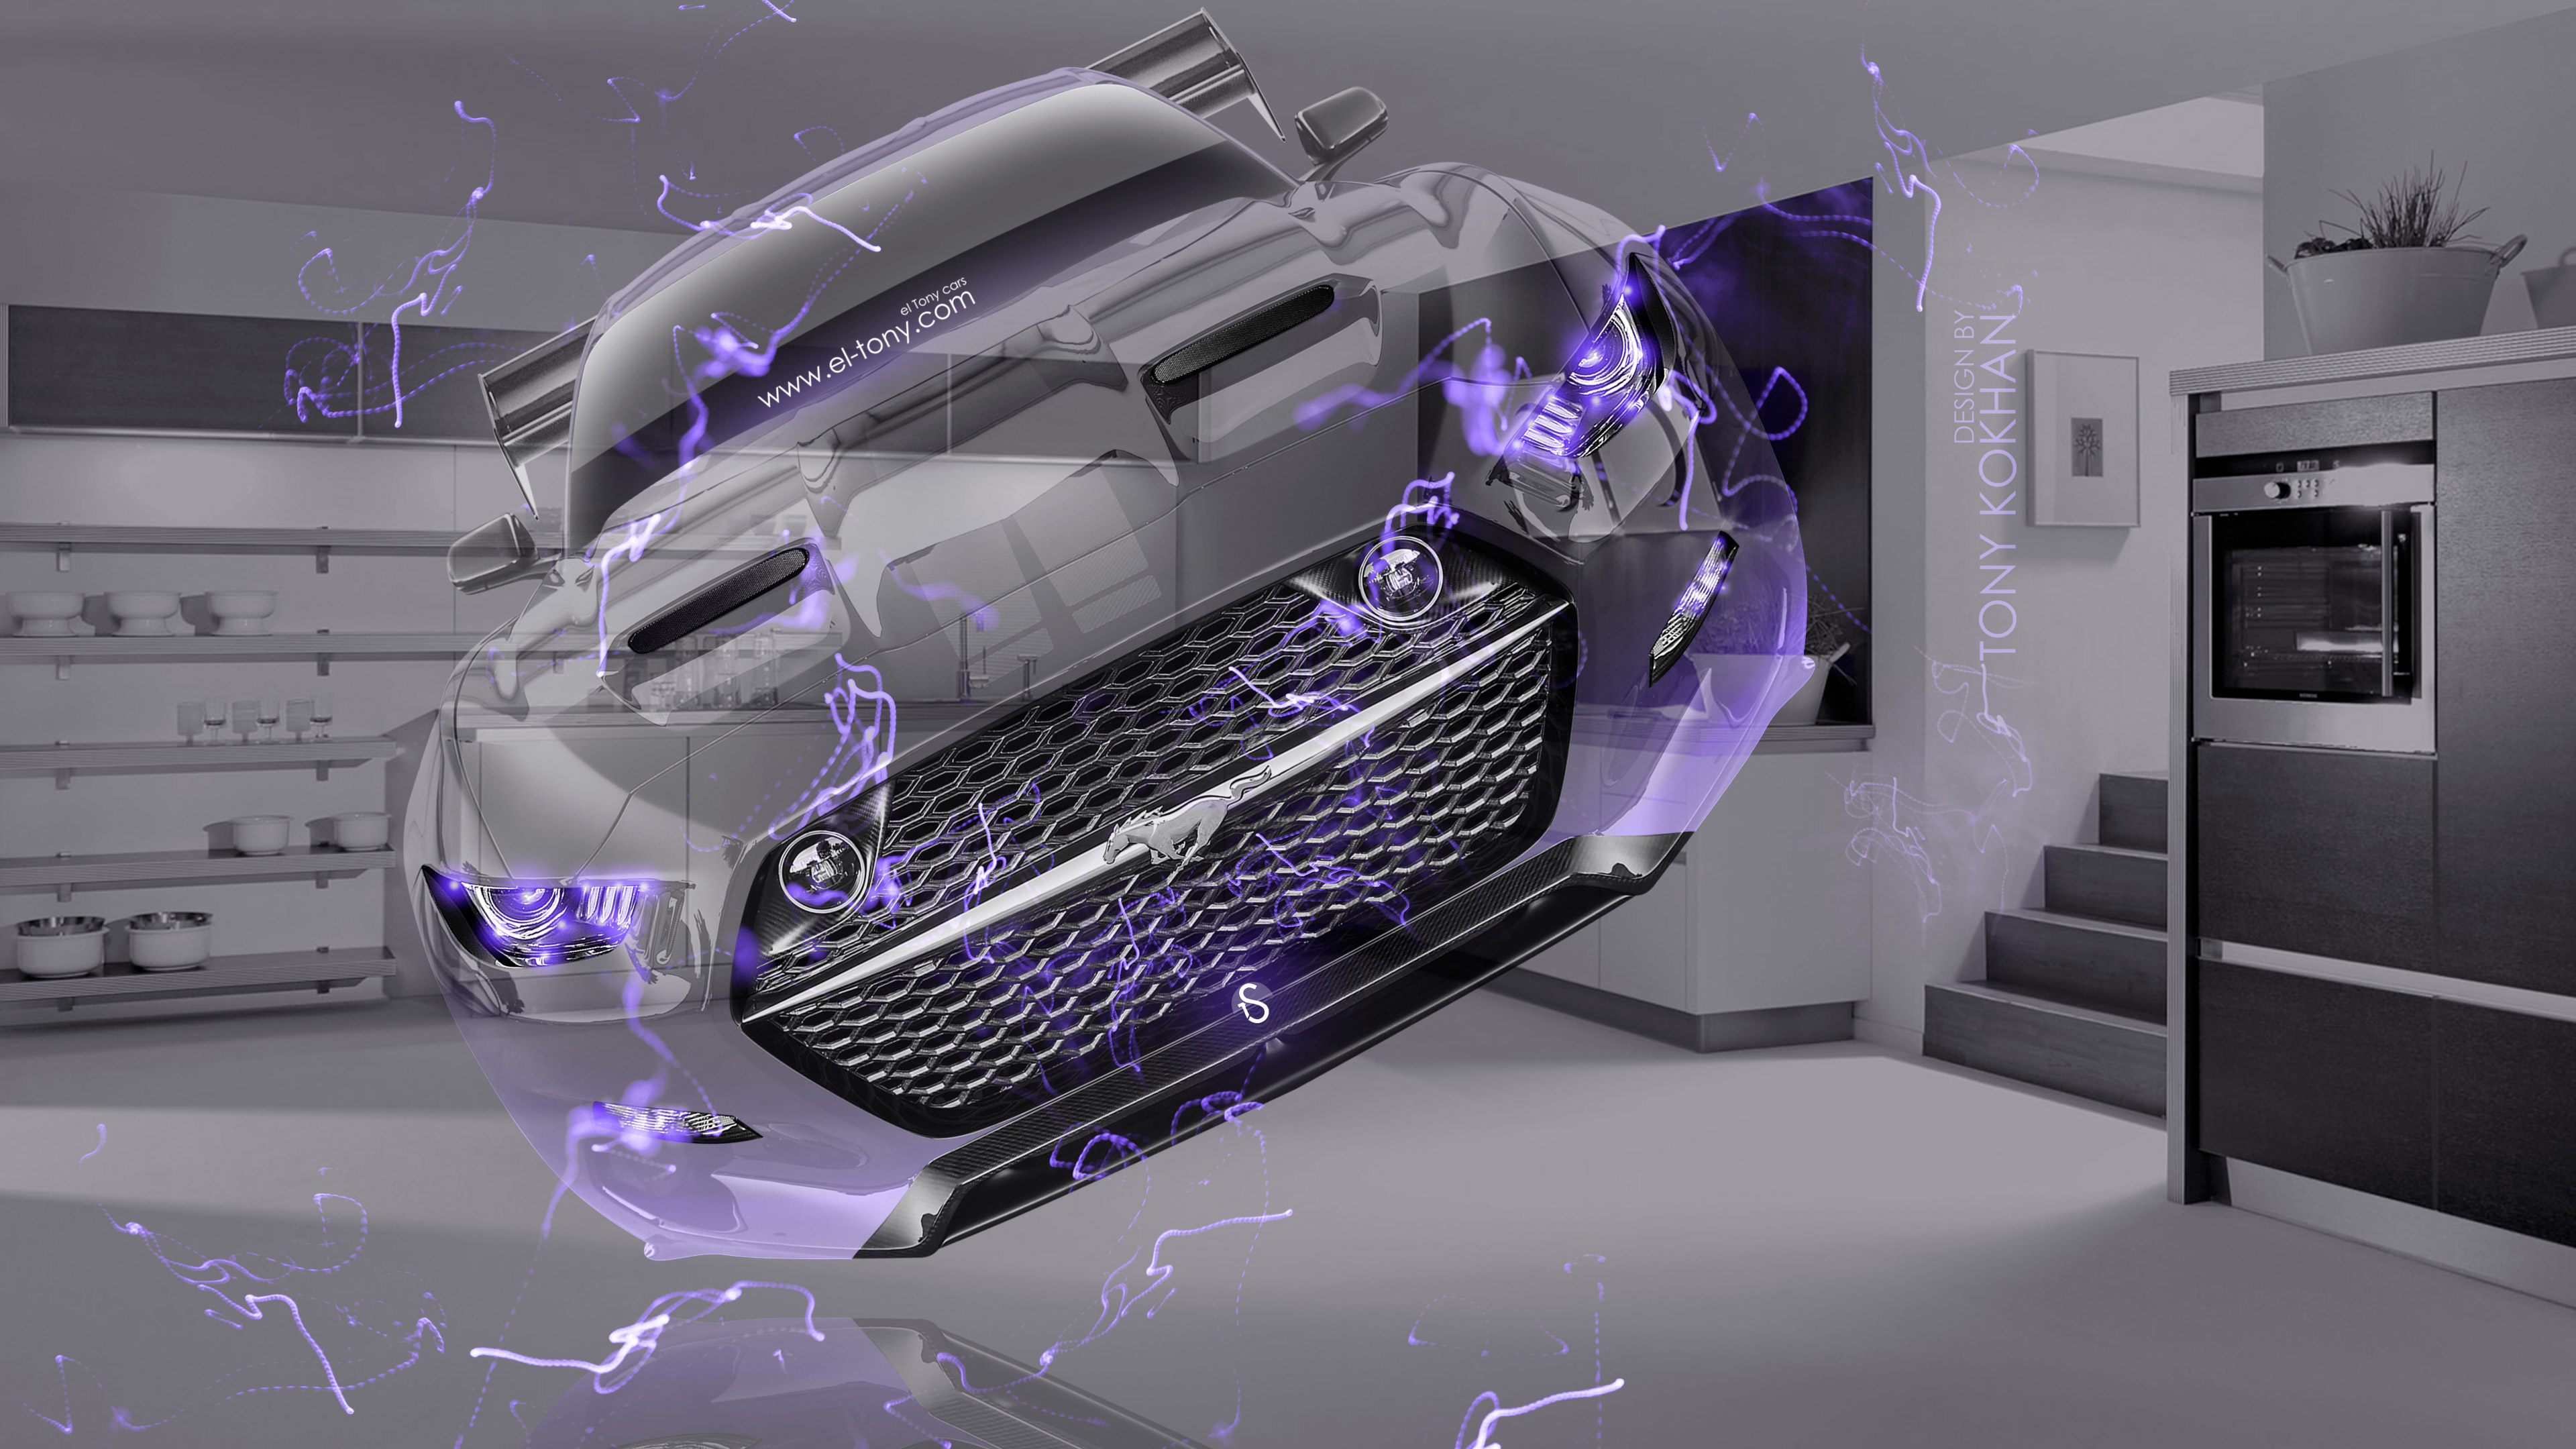 Ford-Mustang-Muscle-Tuning-FrontUp-Fantasy-Crystal-Home-Fly-Transformer-Car-2015-Violet-Neon-Effects-4K-Wallpapers-design-by-Tony-Kokhan-www.el-tony.com-image